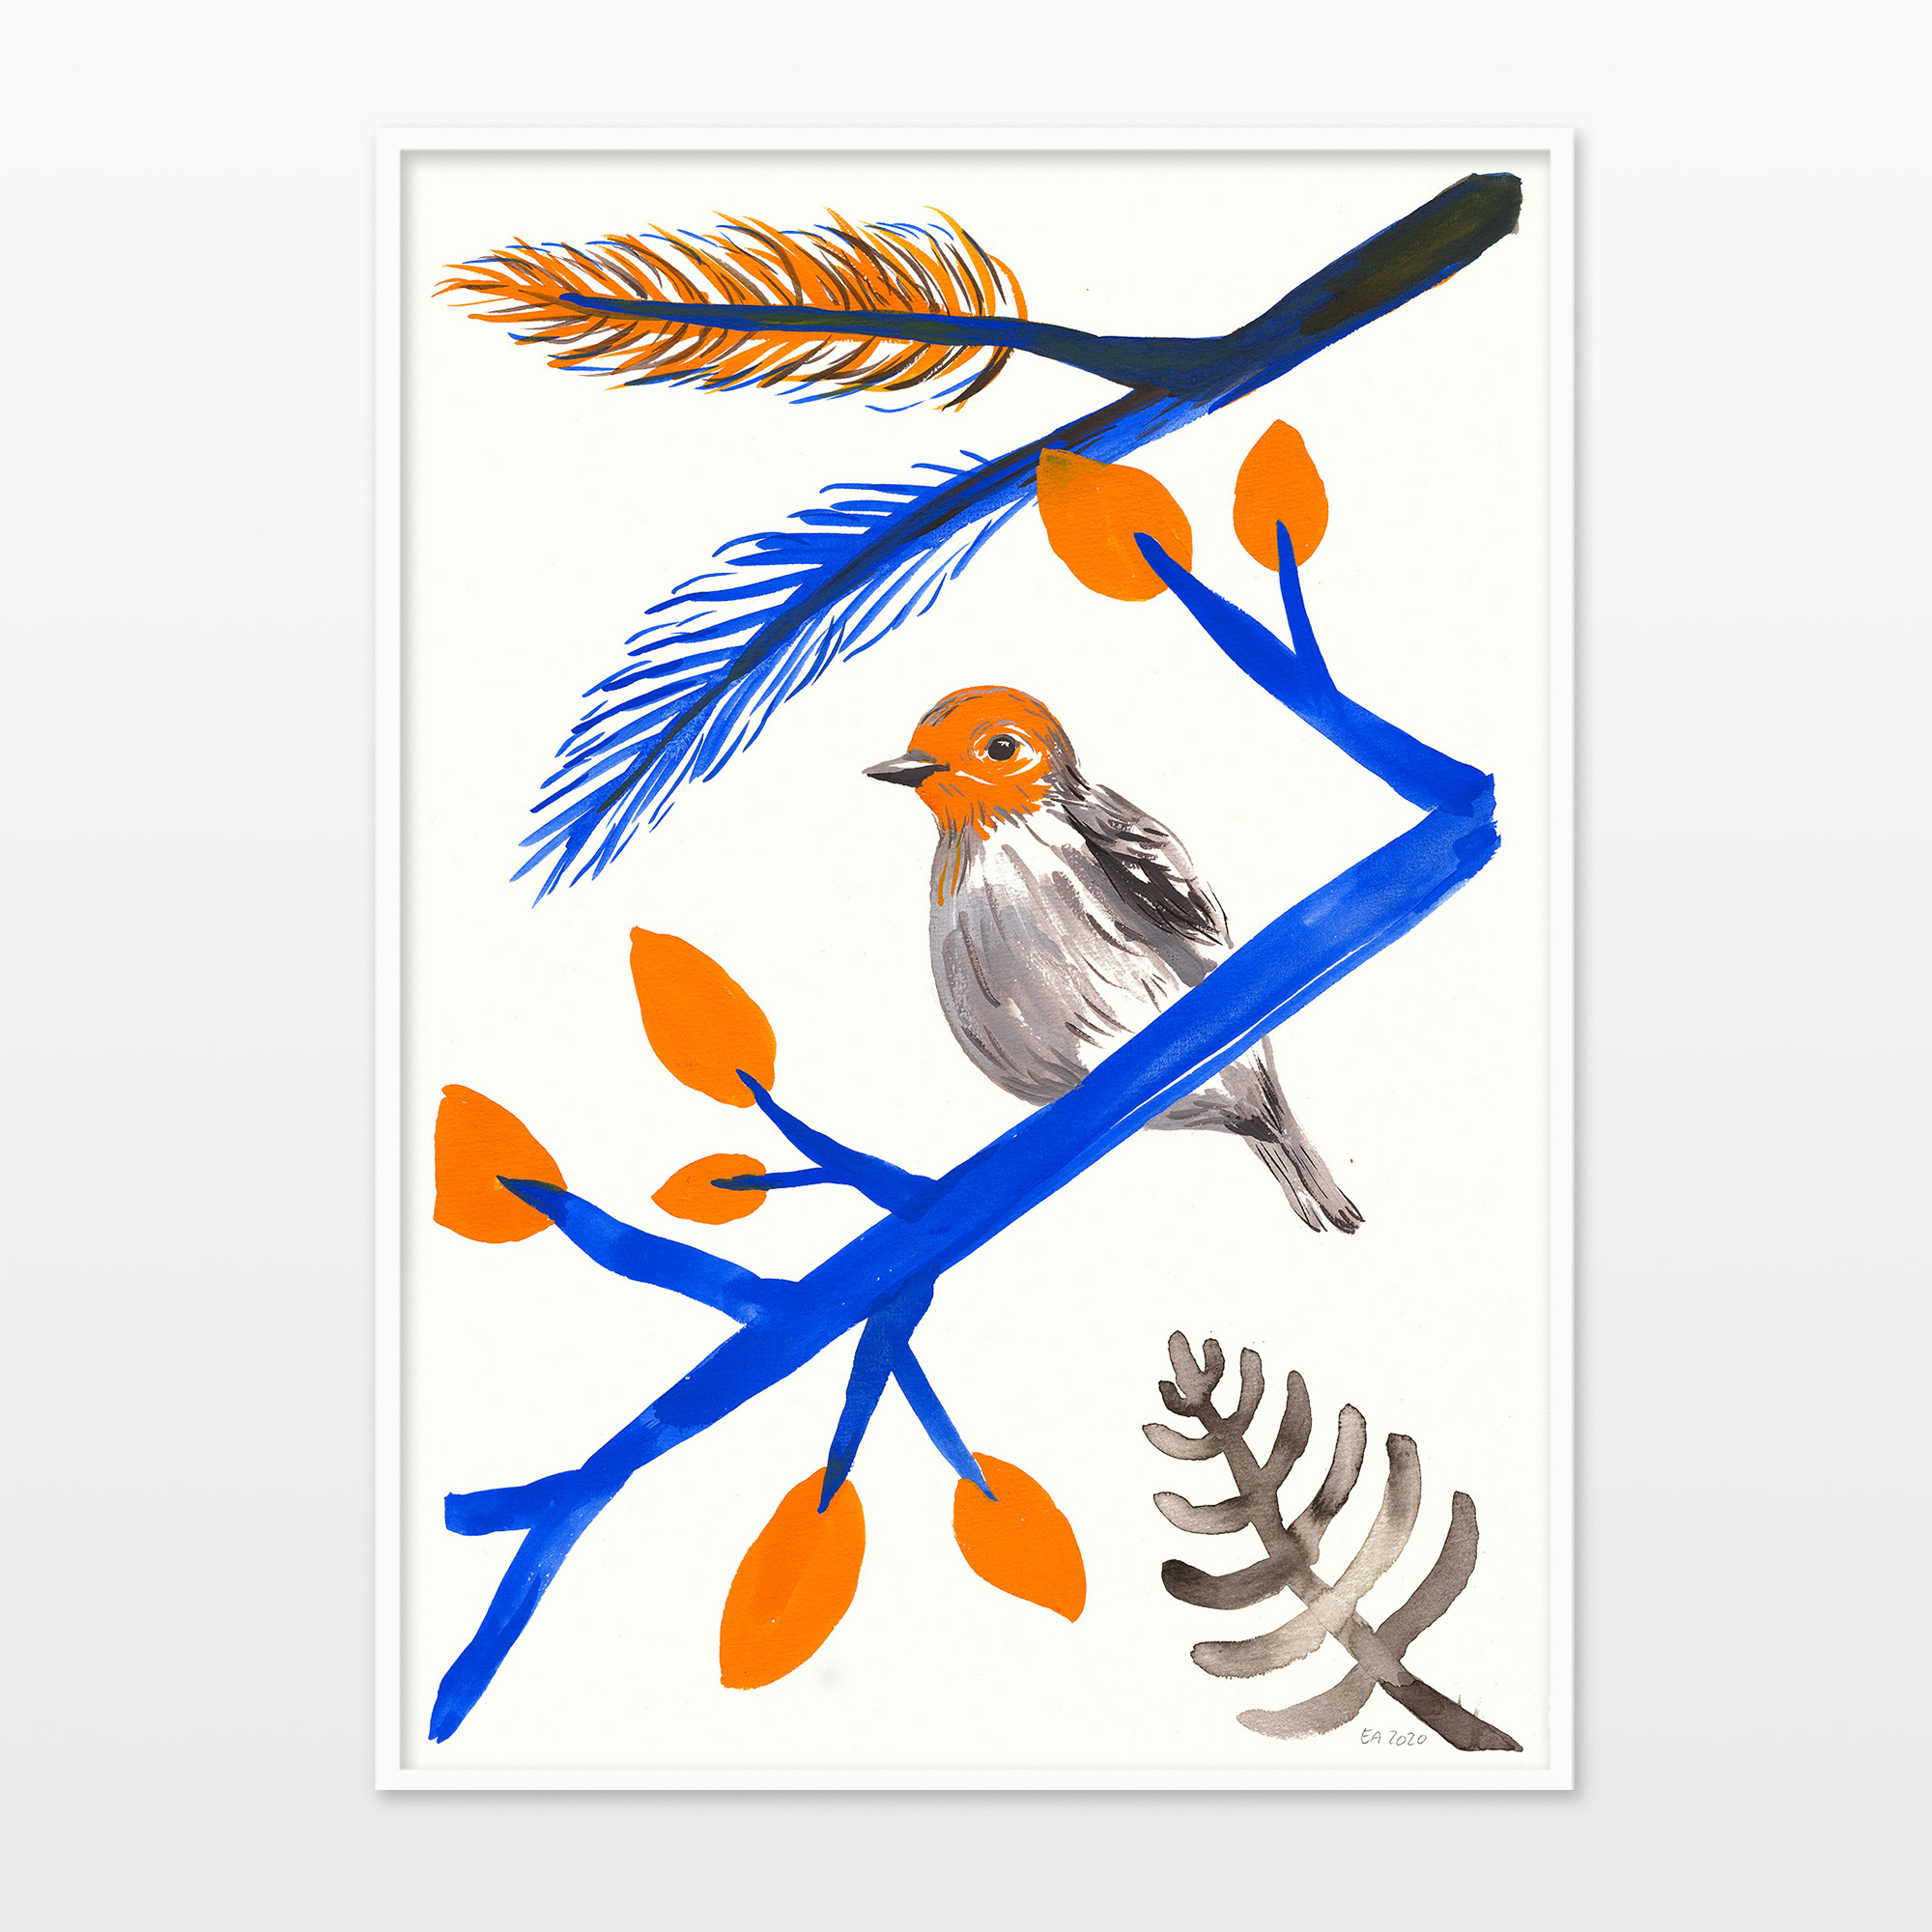 drawings, watercolor-paintings, aesthetic, family-friendly, figurative, graphical, illustrative, animals, botany, nature, wildlife, blue, orange, ink, paper, watercolor, beautiful, birds, contemporary-art, cute, danish, interior, interior-design, modern, modern-art, nordic, posters, prints, trees, Buy original high quality art. Paintings, drawings, limited edition prints & posters by talented artists.